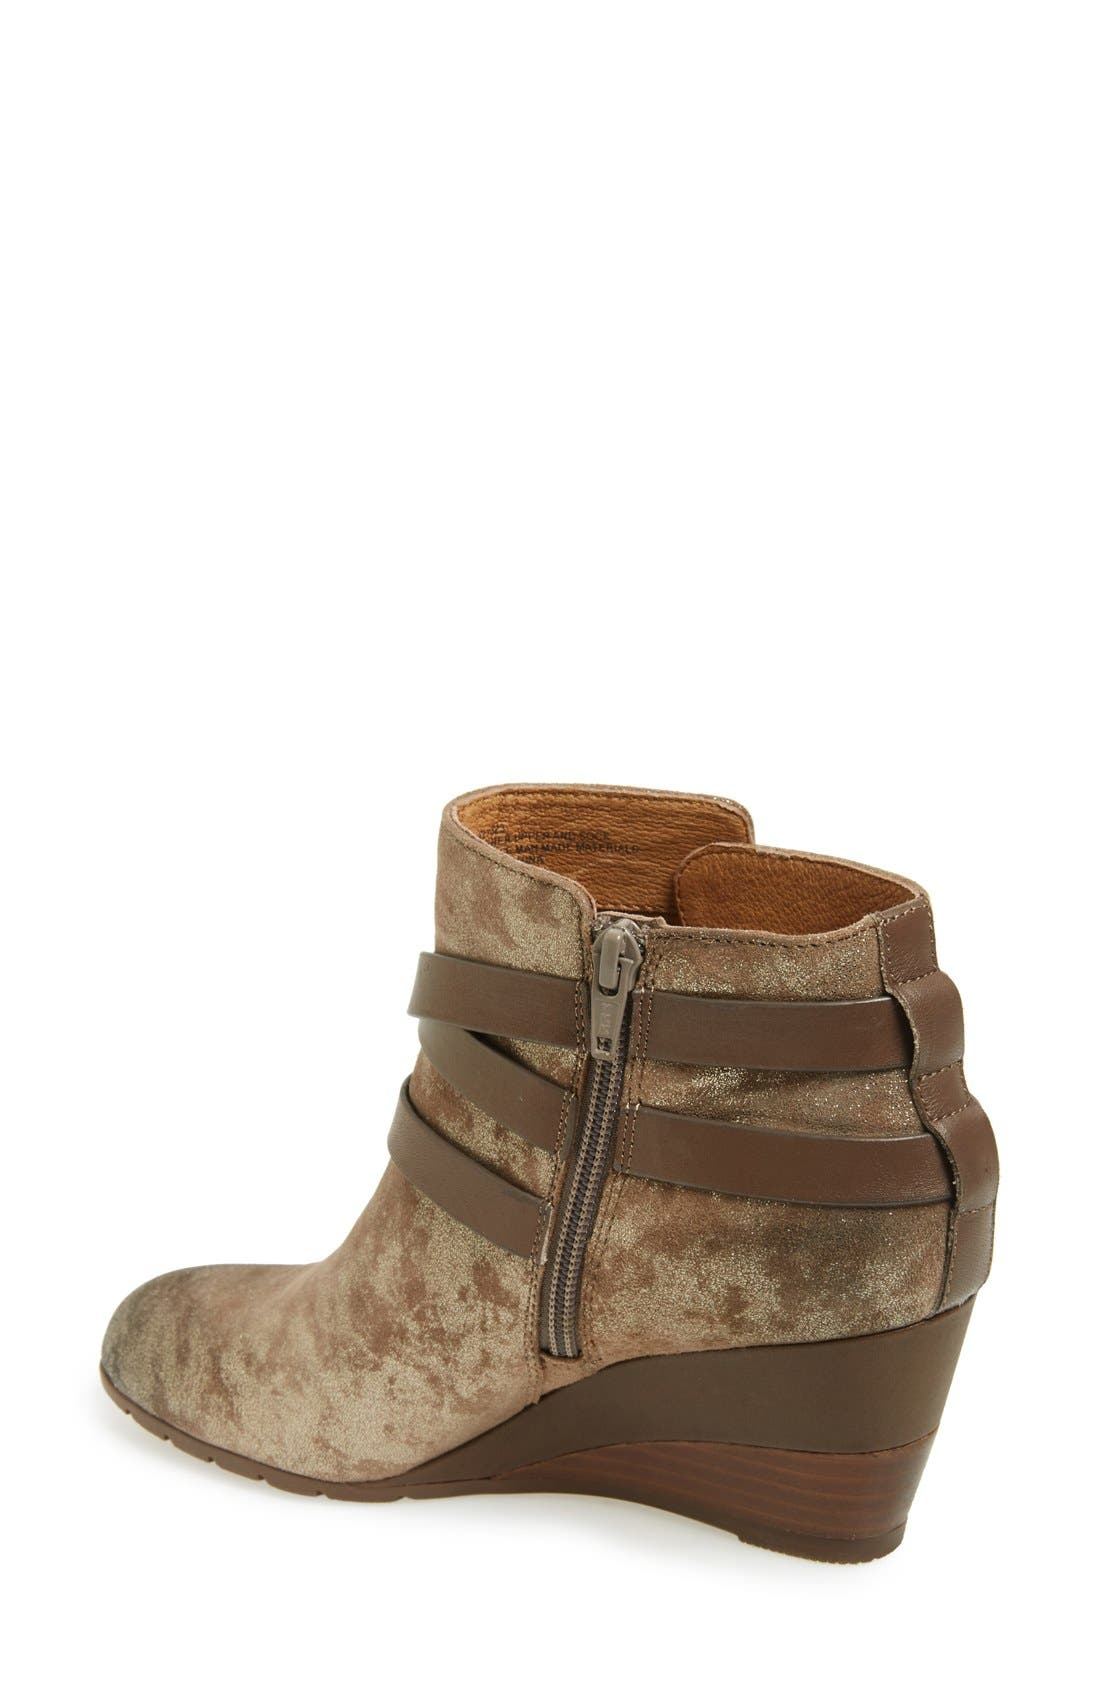 Alternate Image 2  - Söfft 'Oakes' Wedge Bootie (Women)